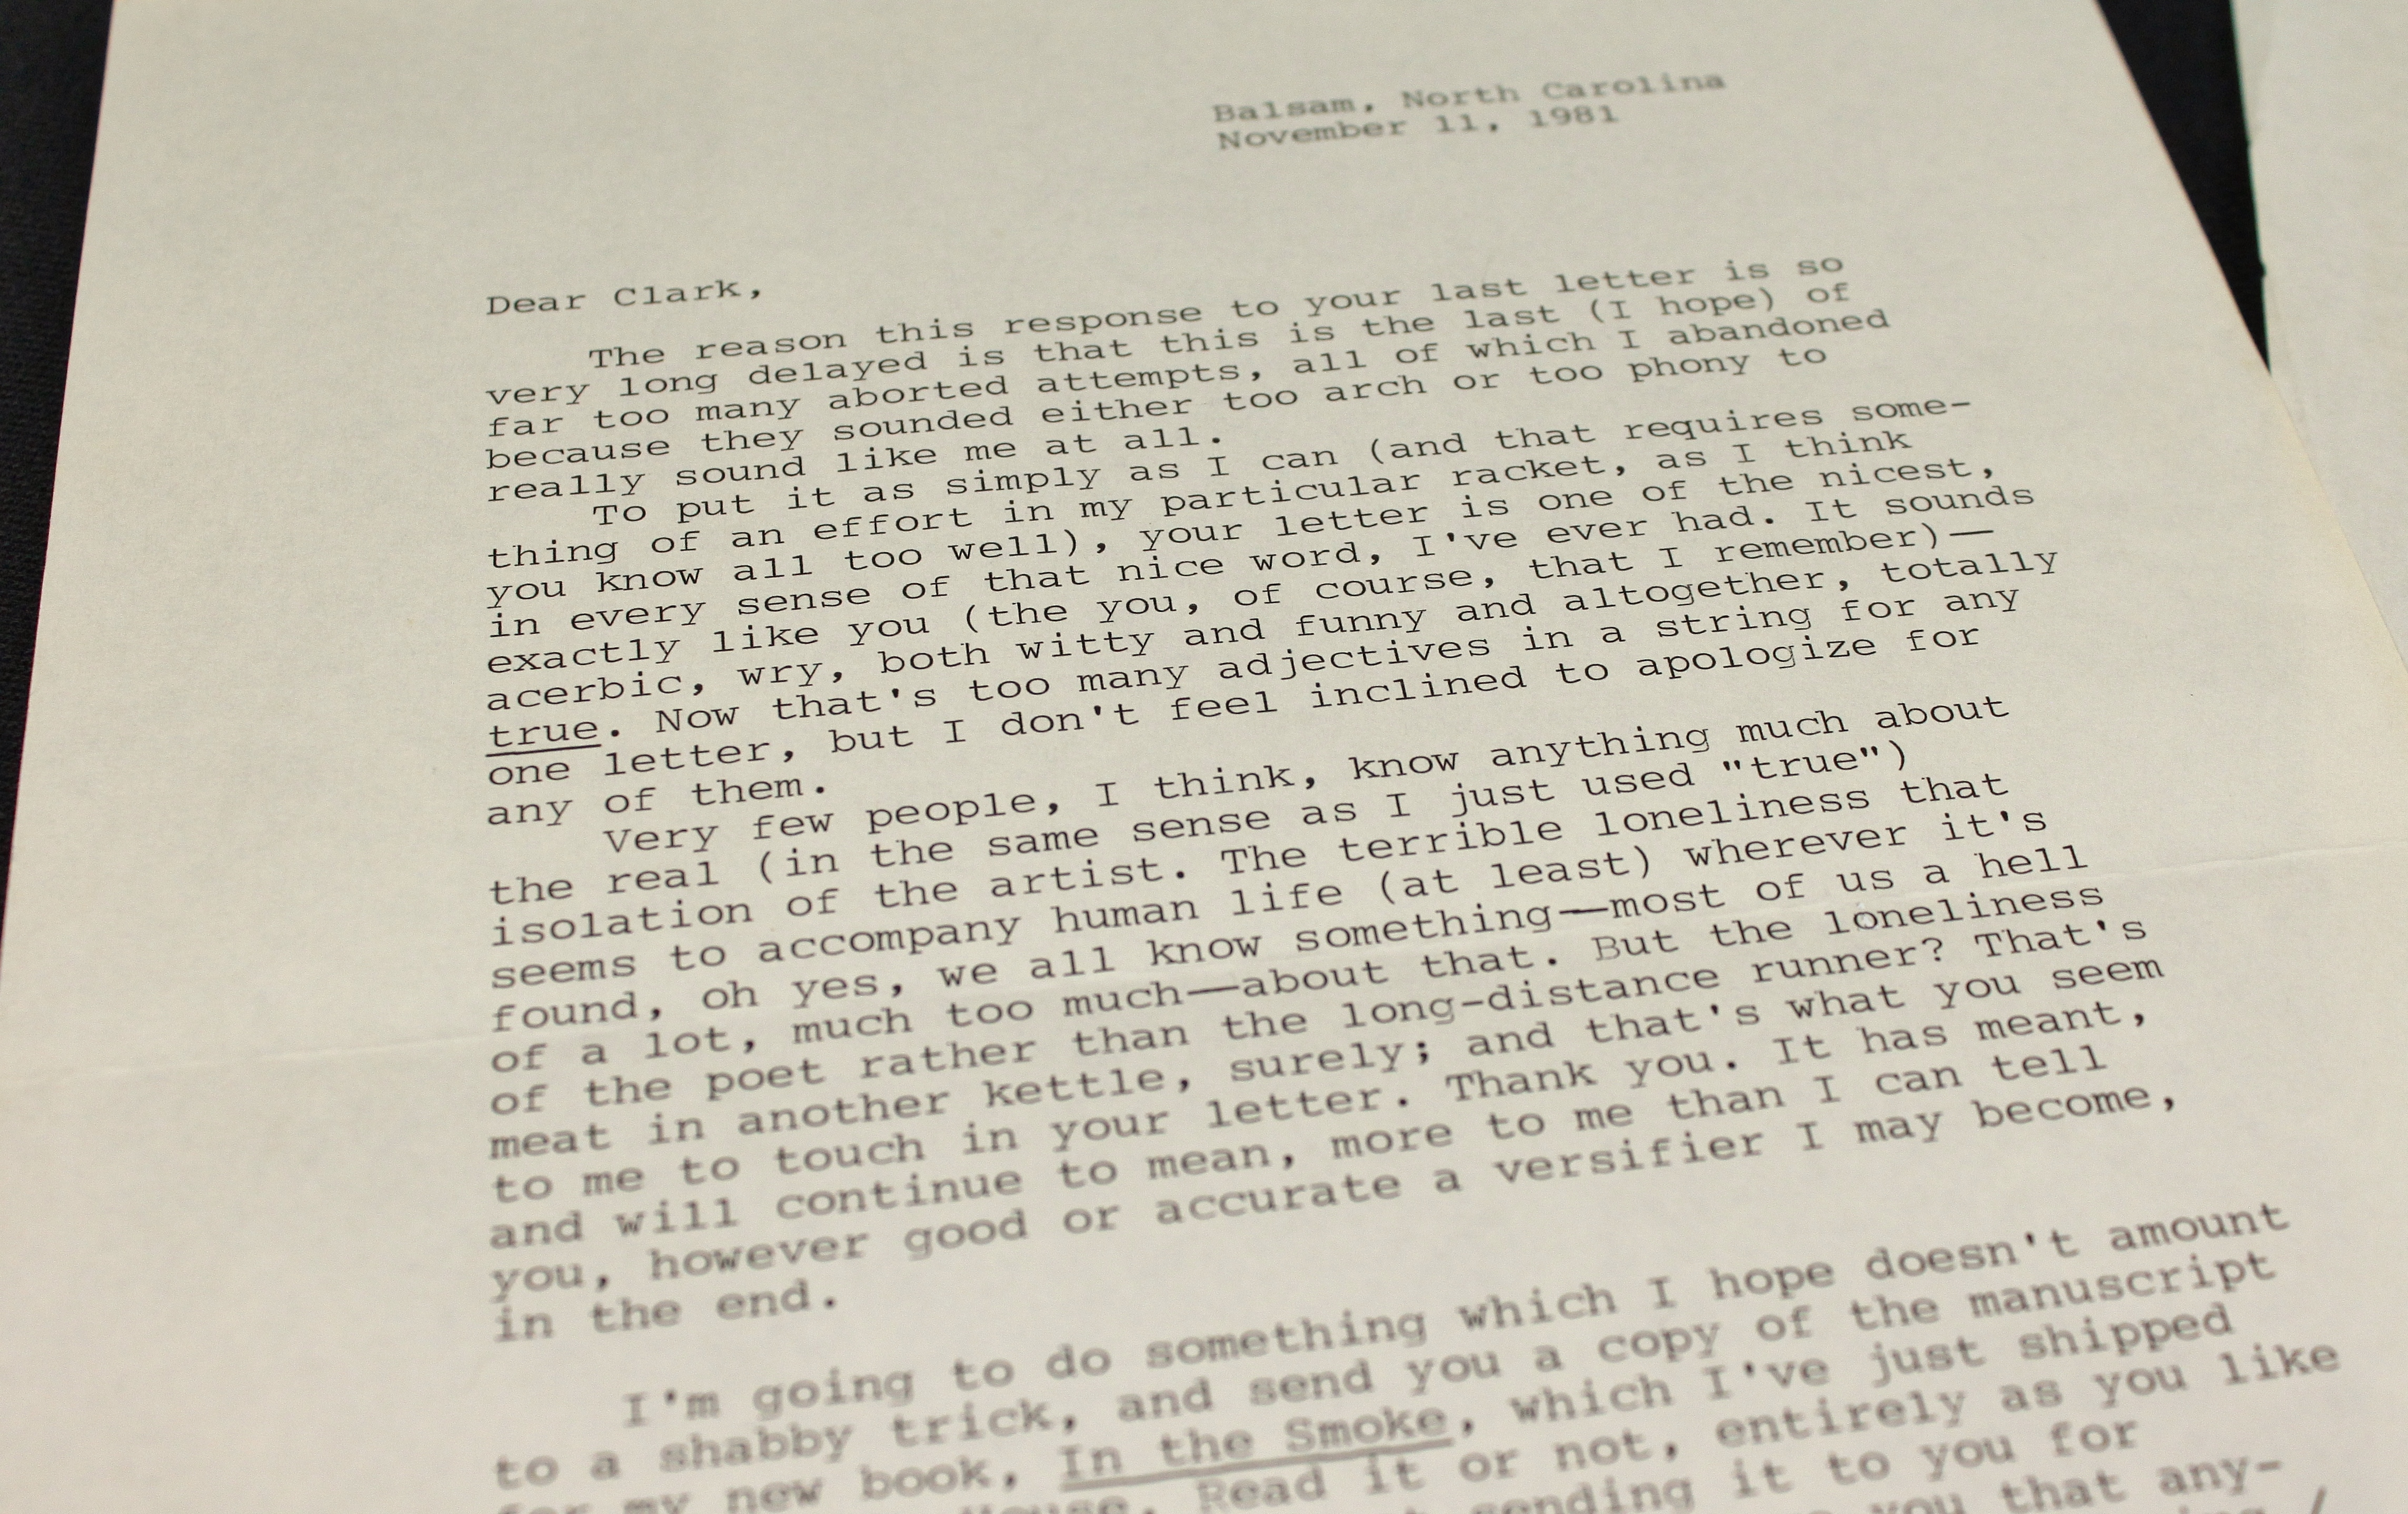 Letter from Perry to Clark Mixon Emery, November 11, 1981.